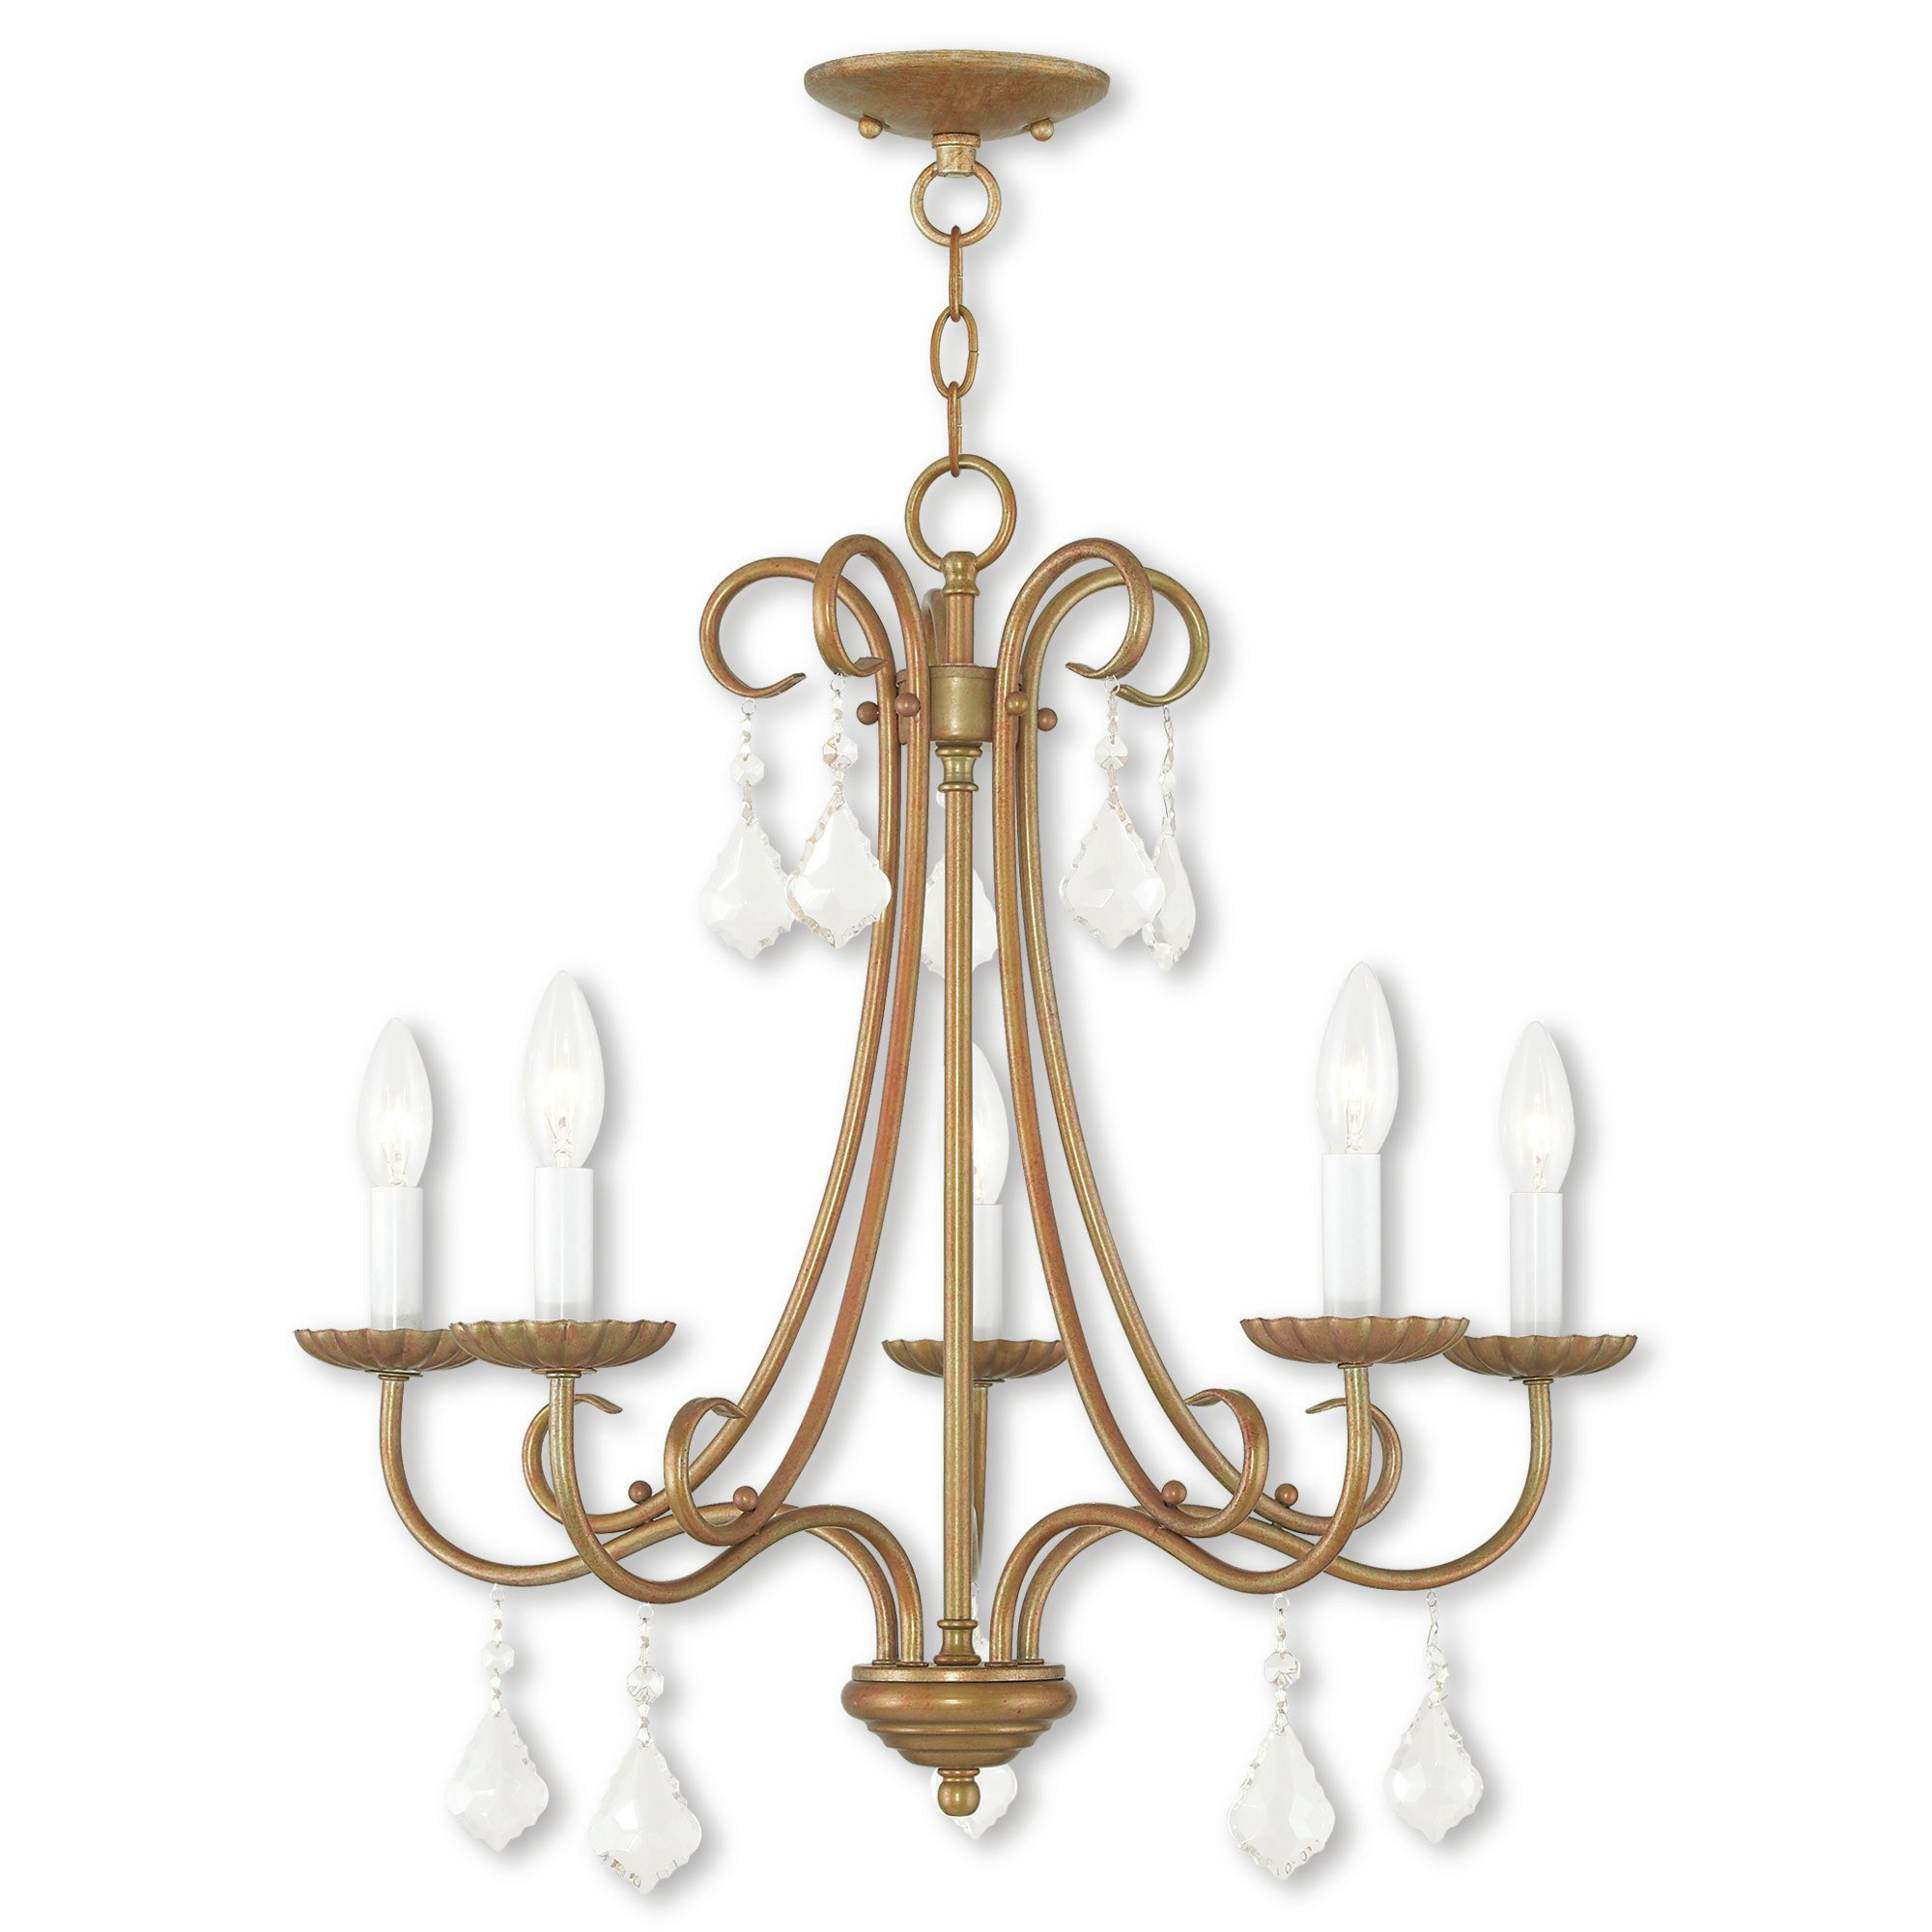 Devan 5 Light Candle Style Chandelier Within Blanchette 5 Light Candle Style Chandeliers (Gallery 13 of 30)